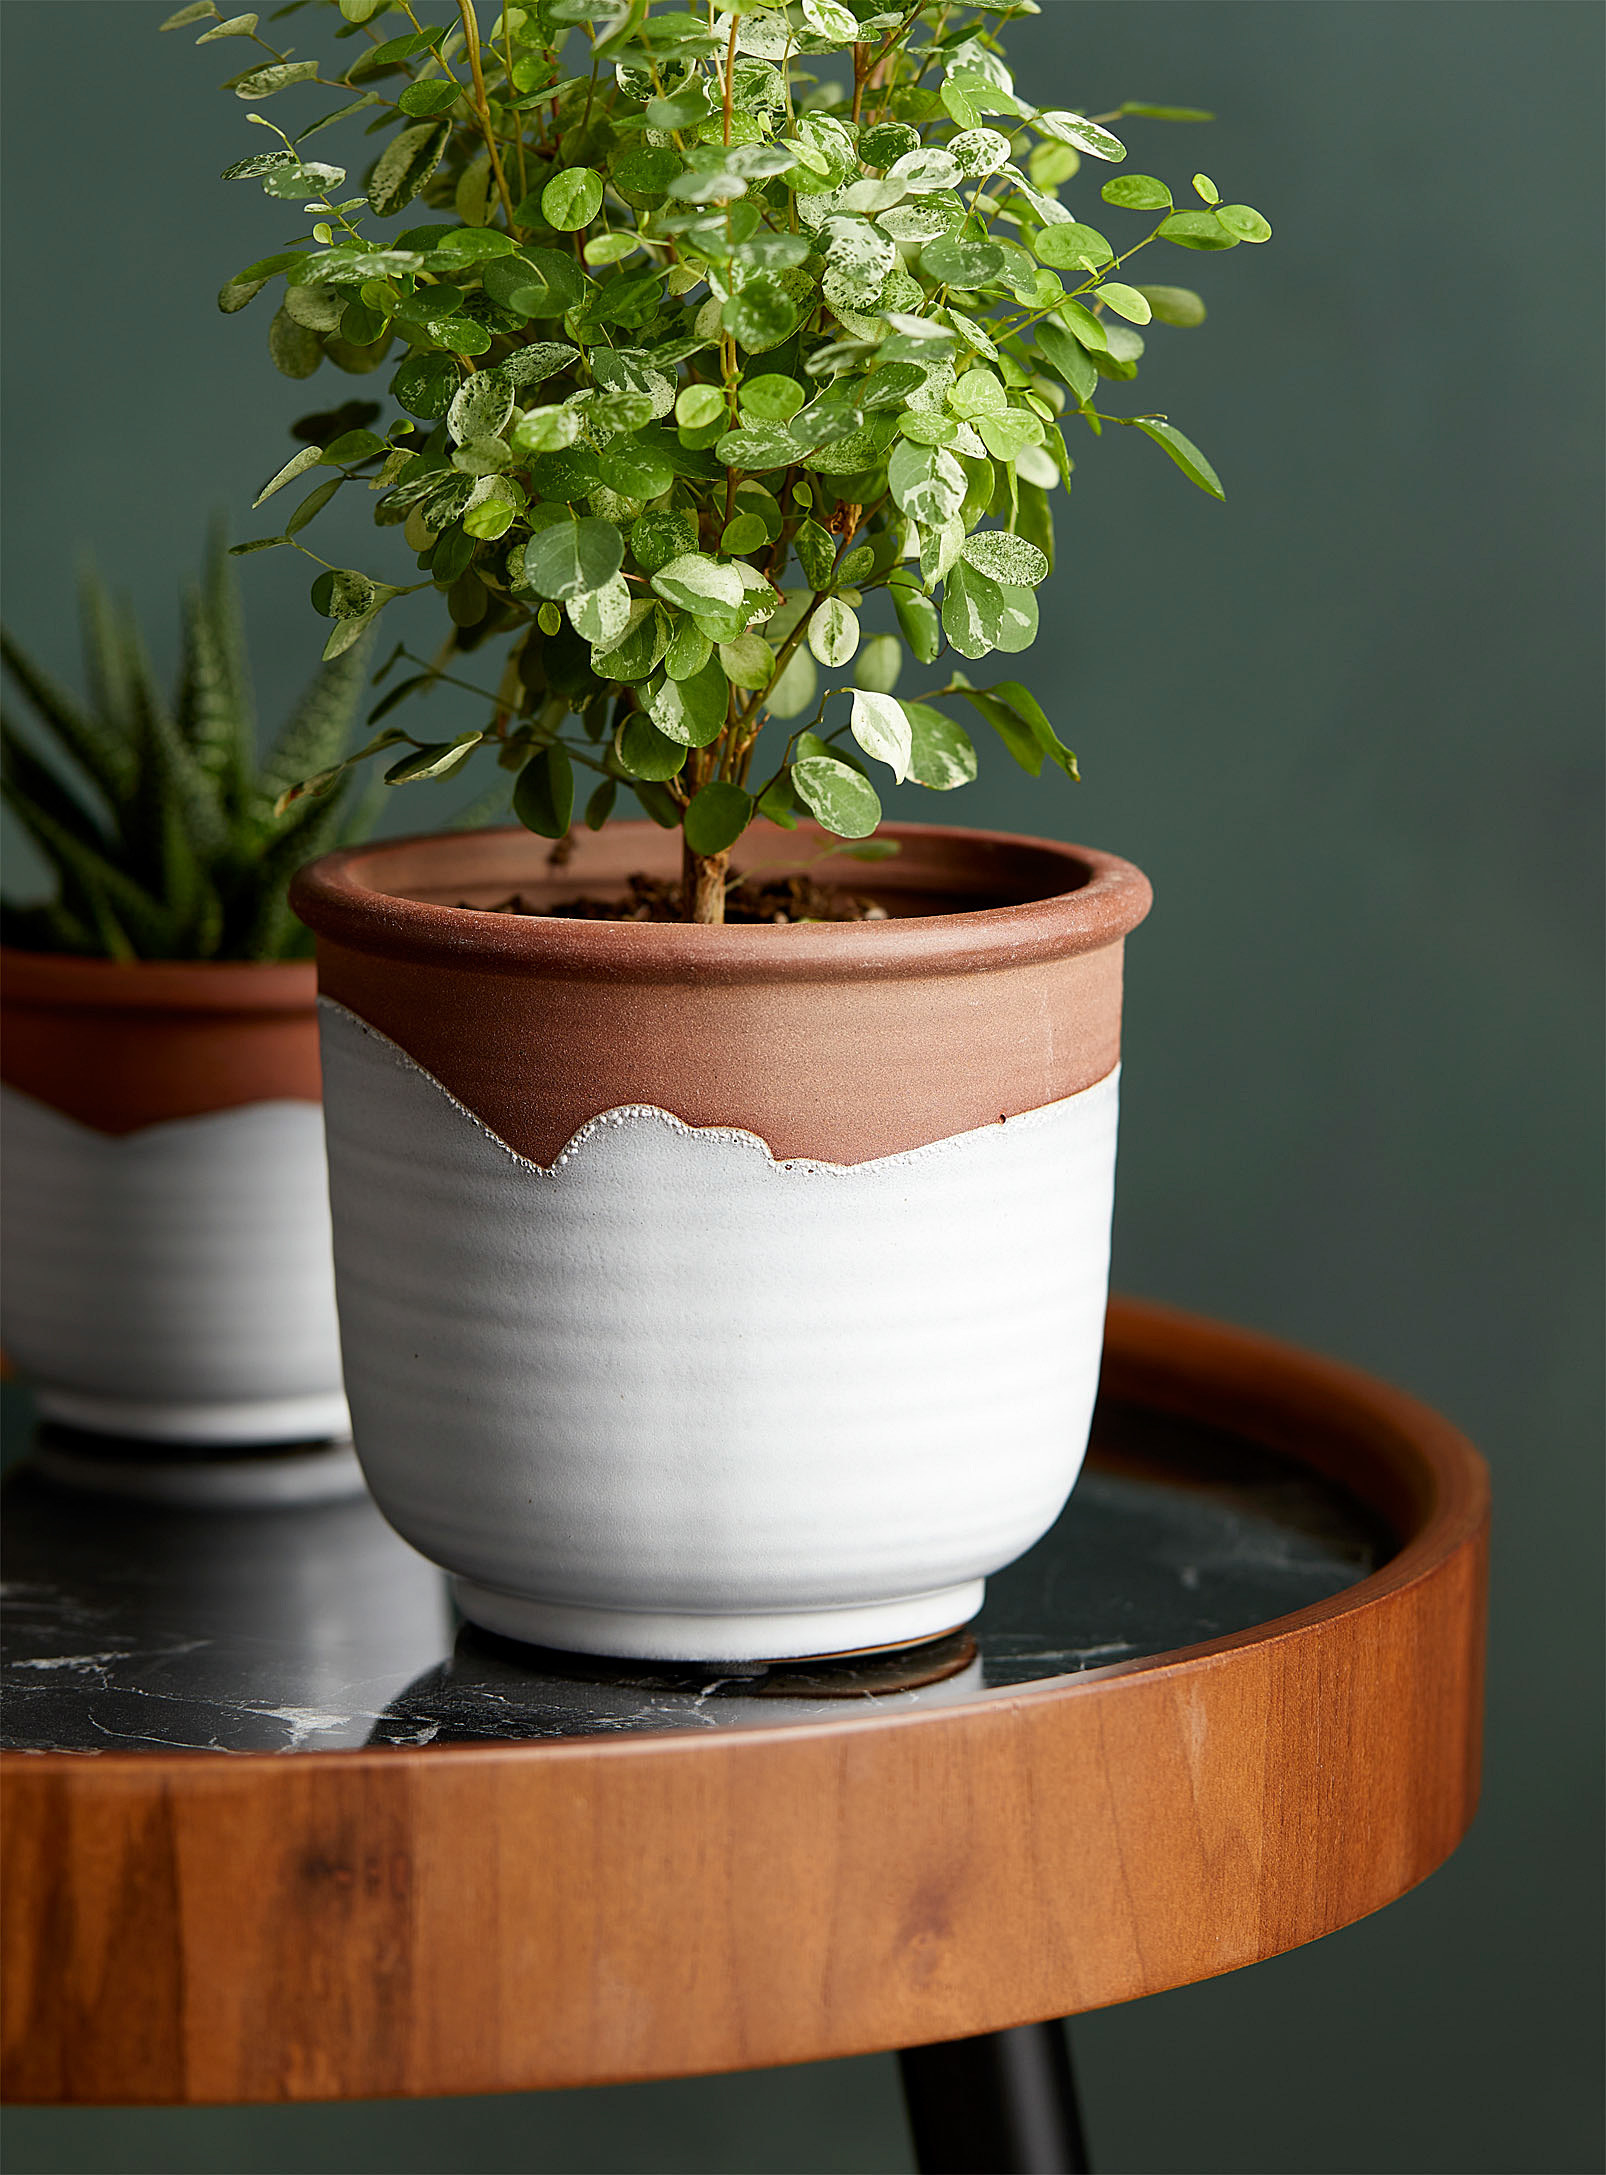 A terracotta planter on a circular side table